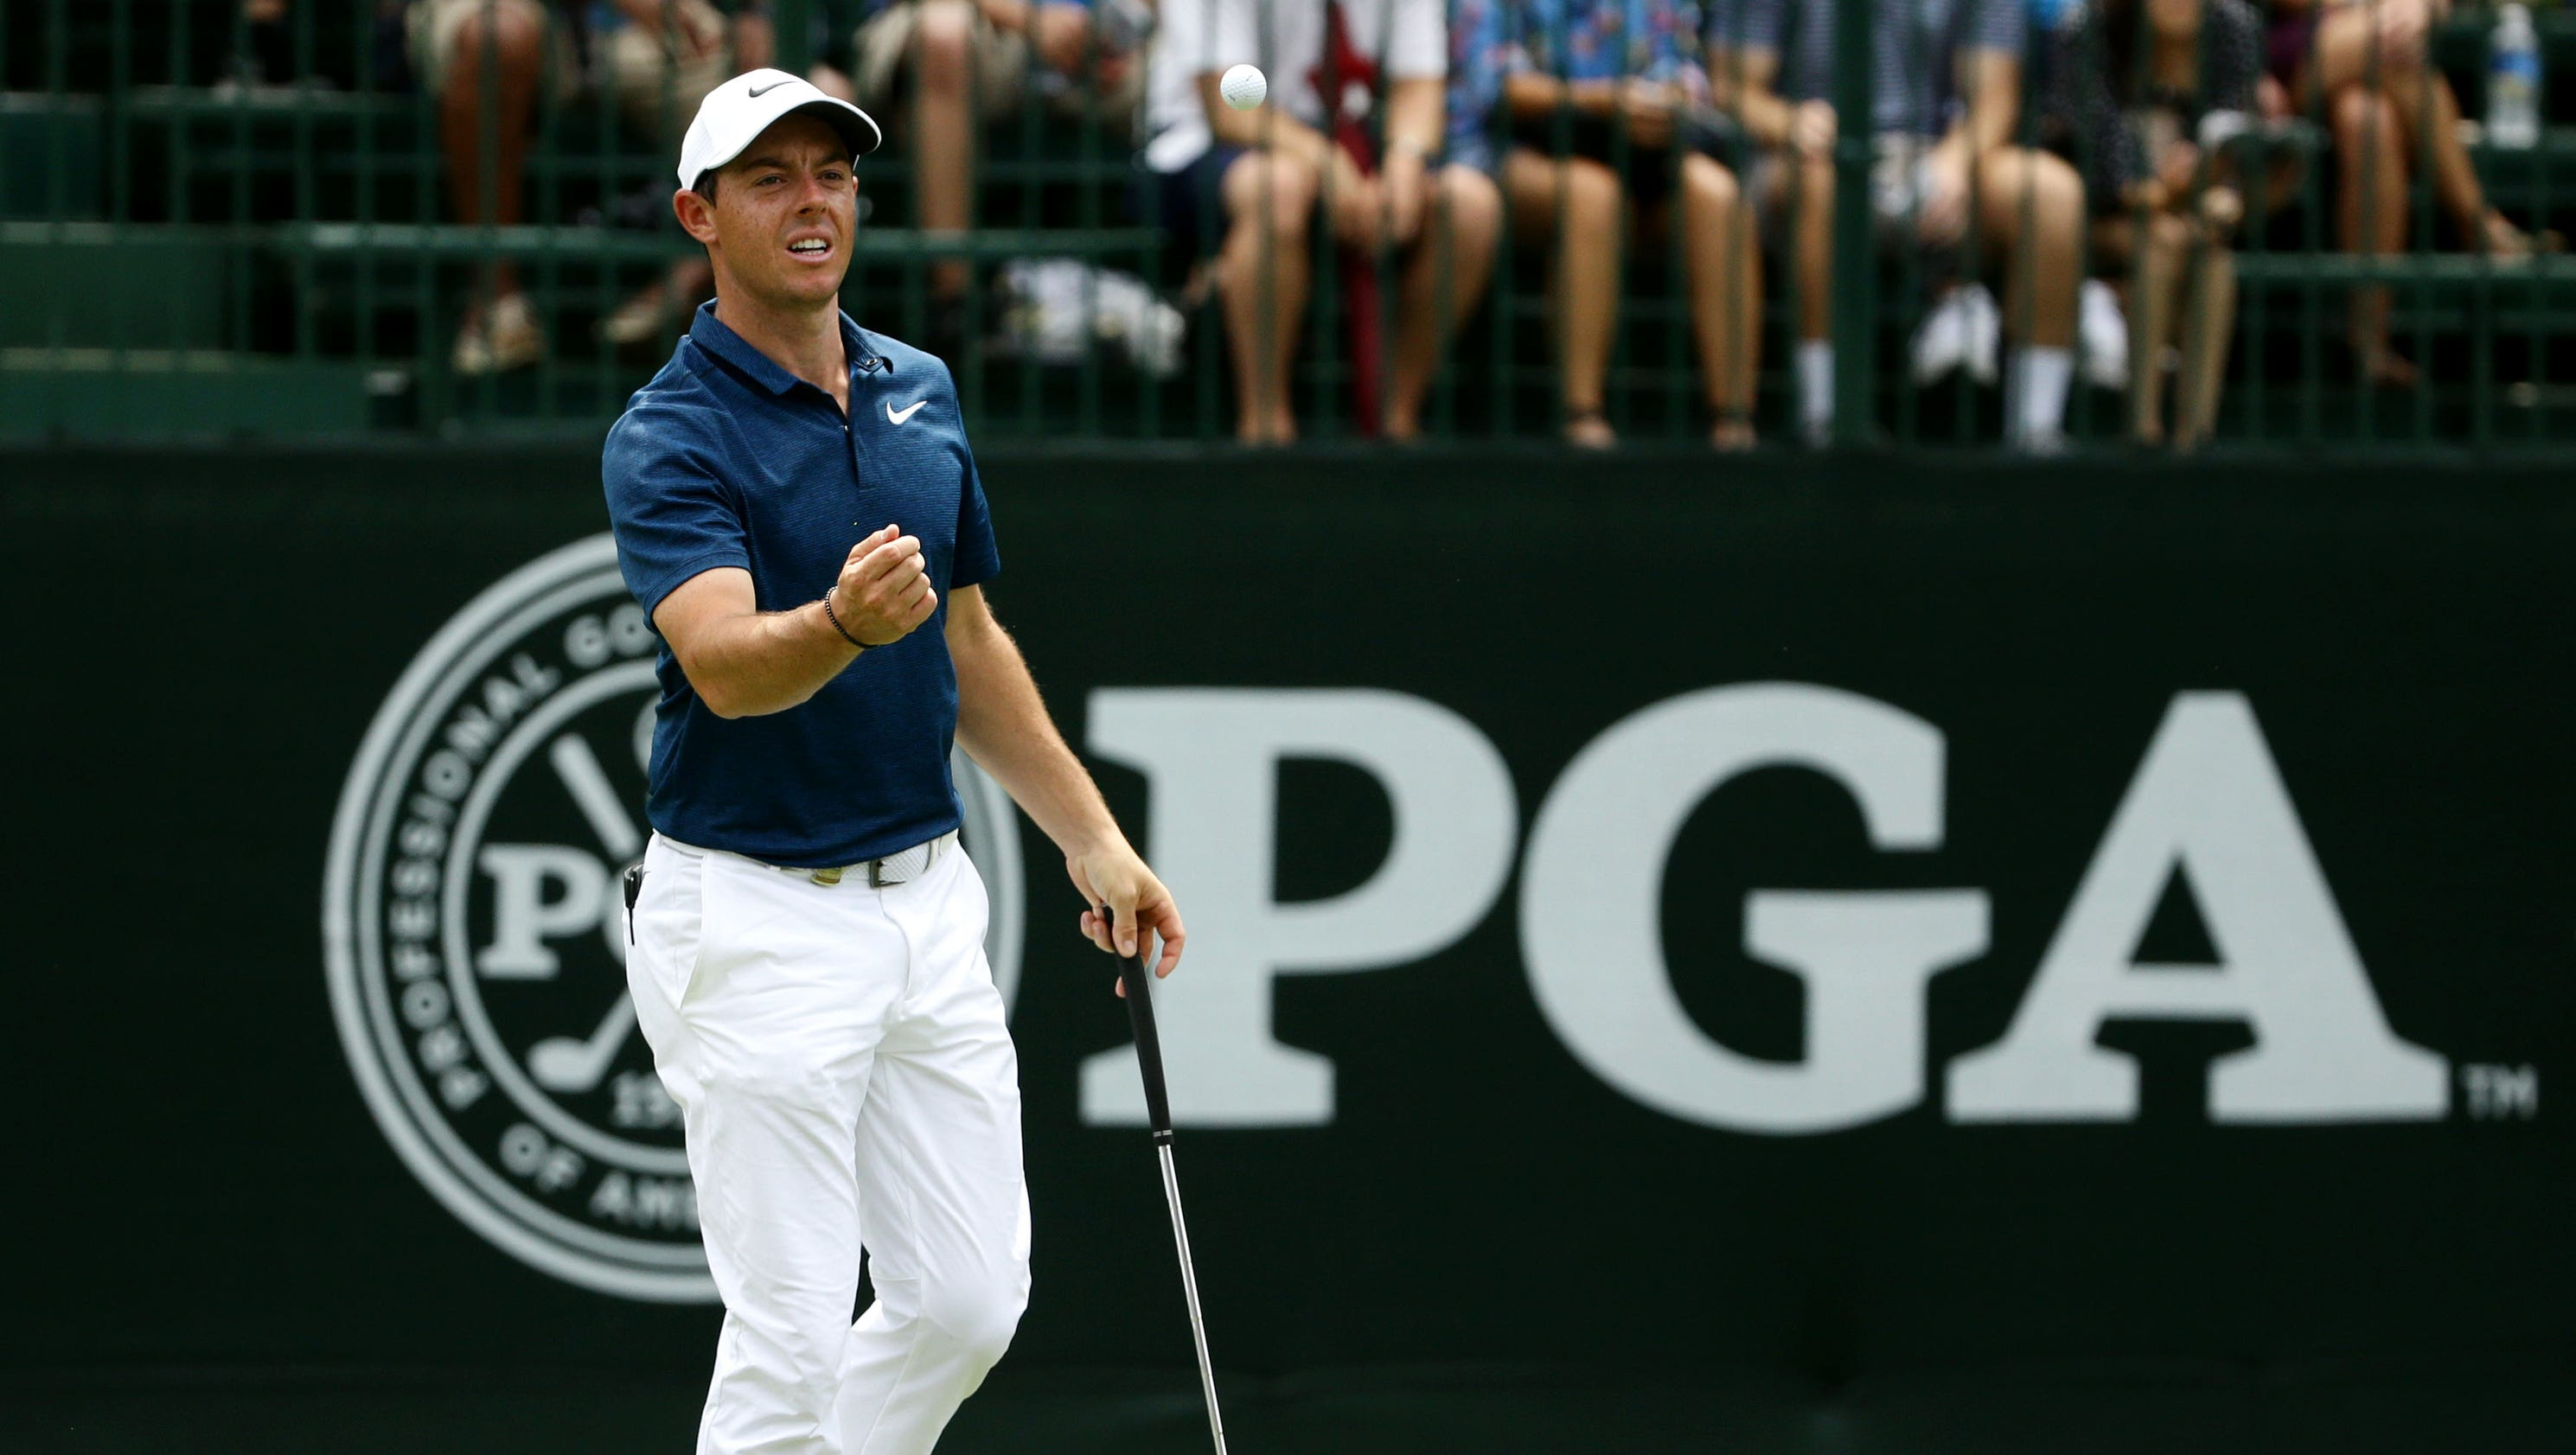 PGA: PGA Tour: Rory McIlroy Wants To Win Before Shutting Down